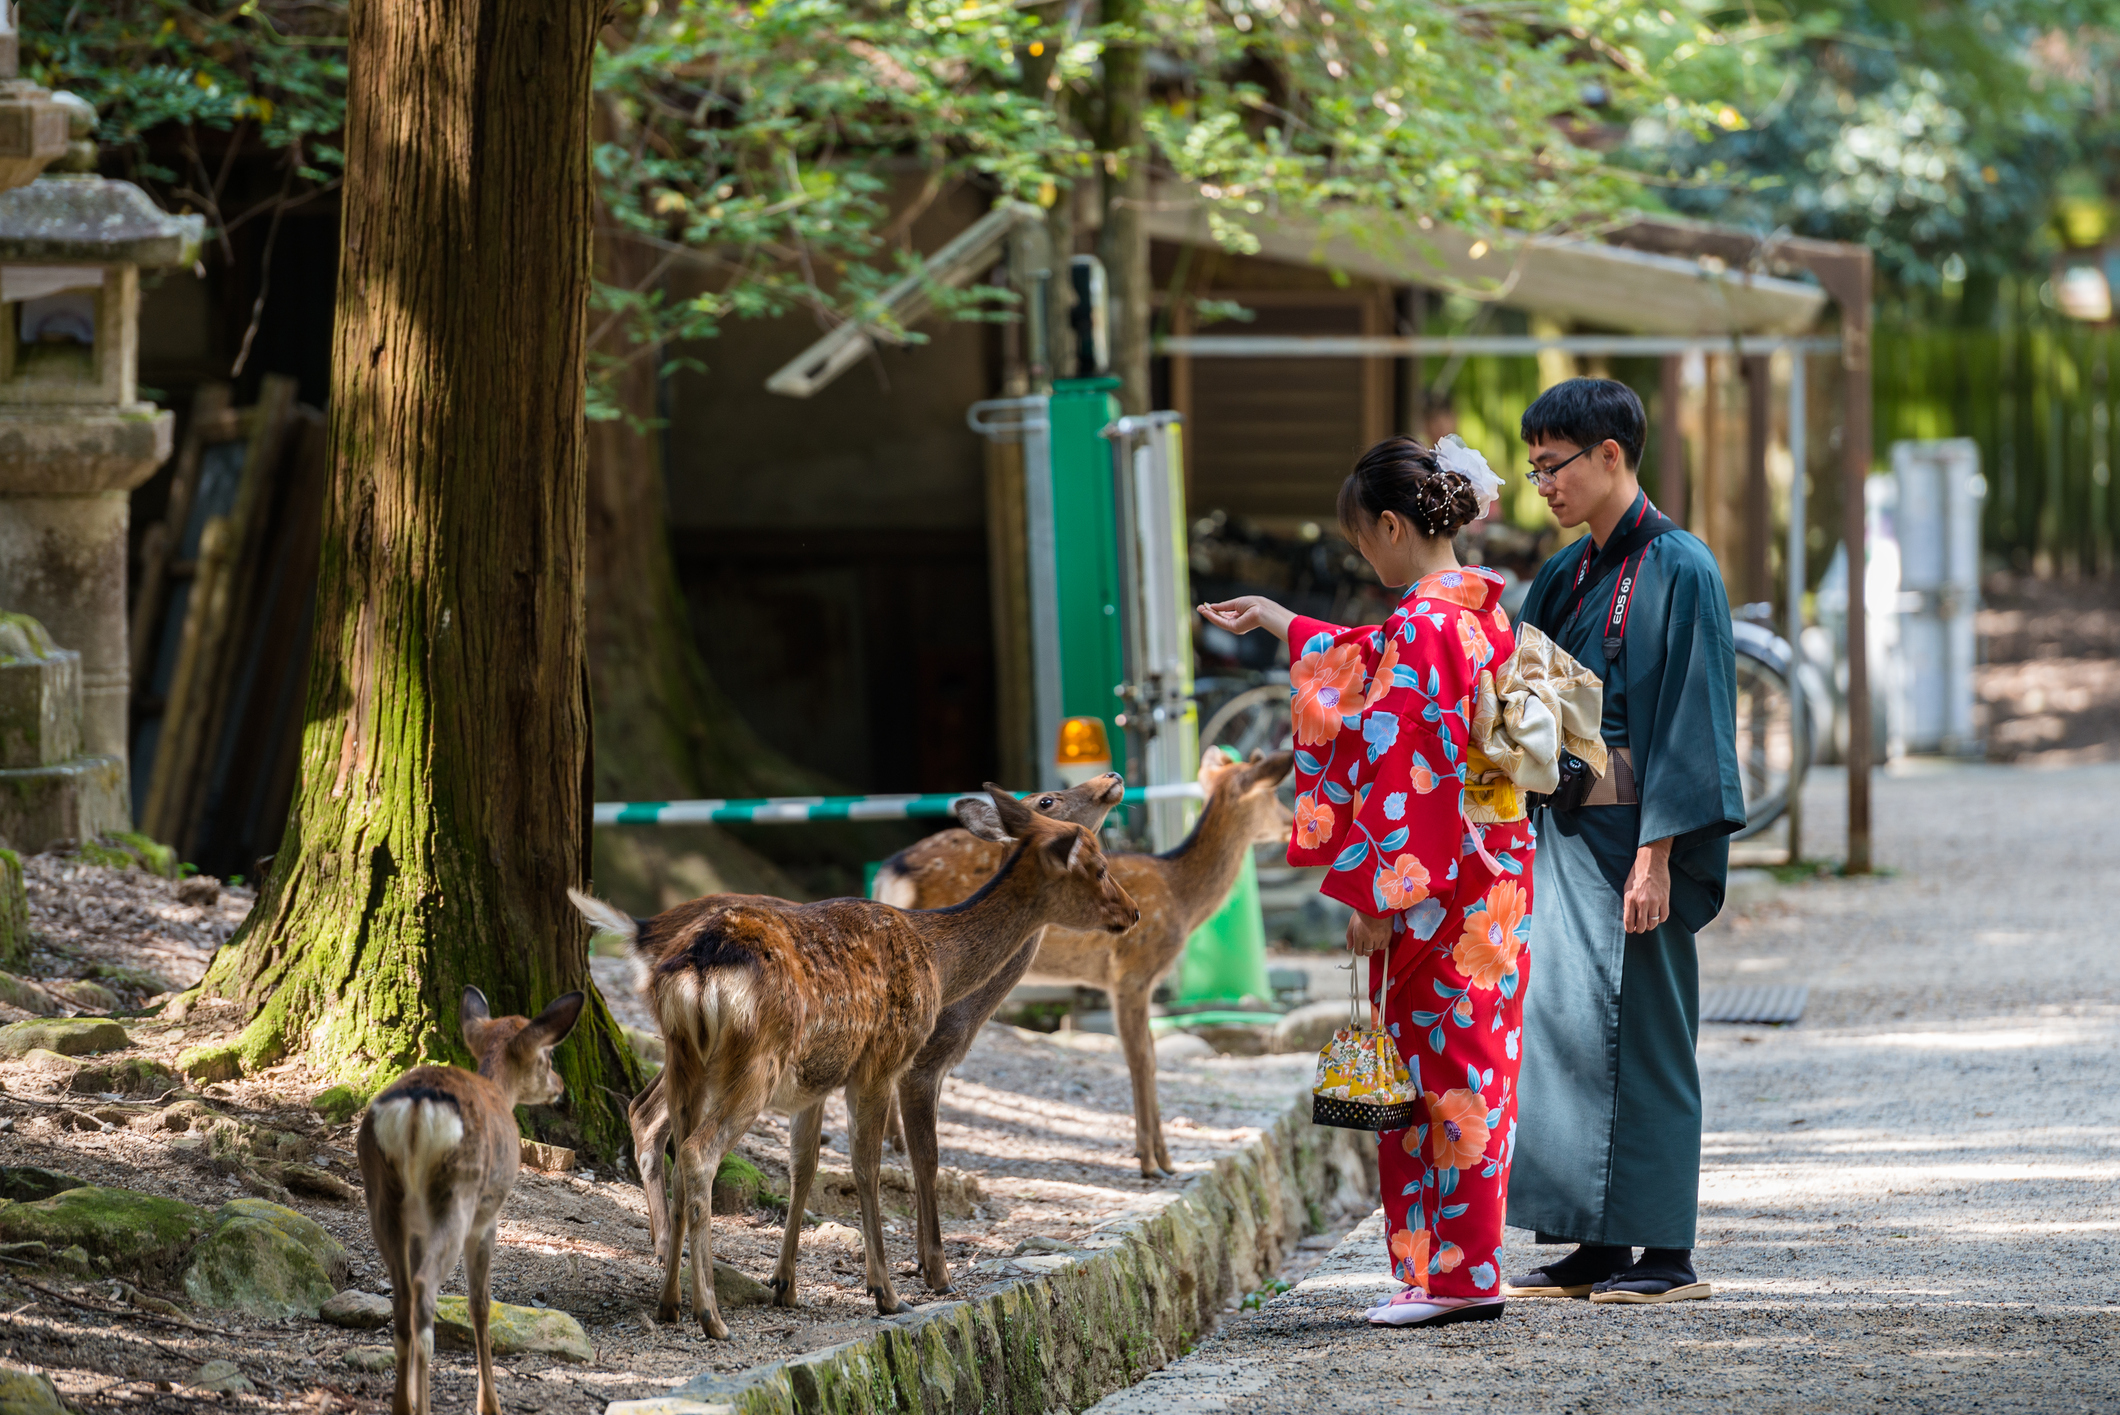 Nara is struggling with creating a transportation and hospitality infrastructure that can deal with an ever-increasing number of tourists. | ISTOCK